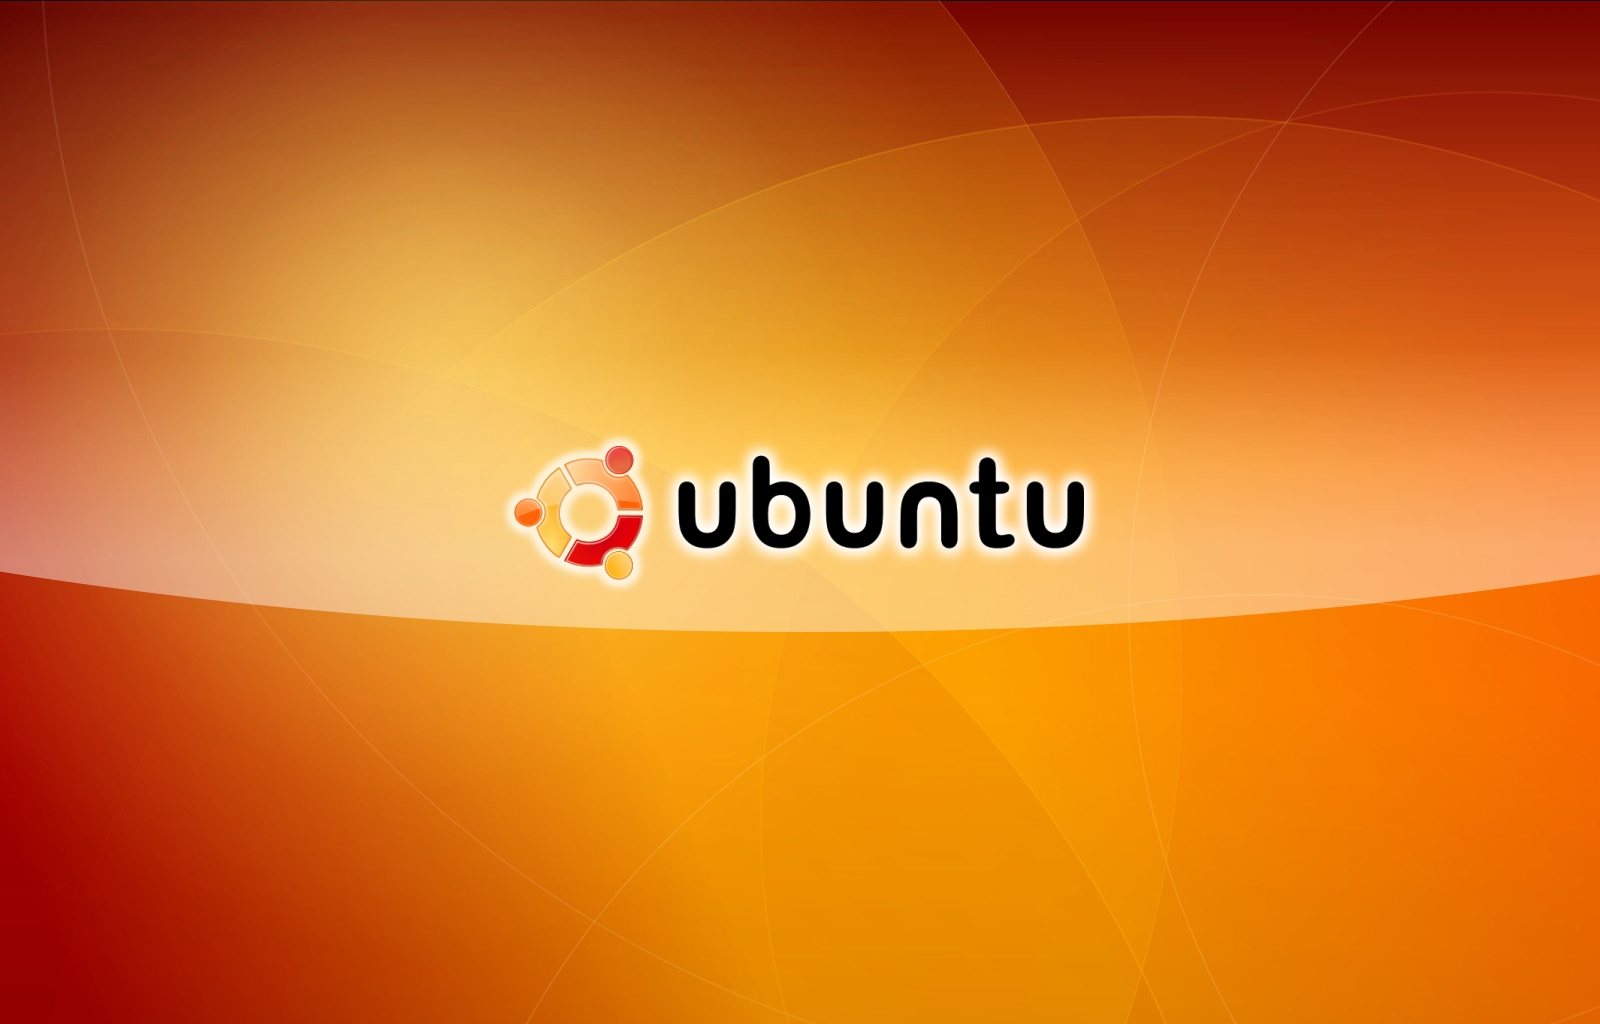 UbuntuLinux 171 Awesome Wallpapers 1600x1024